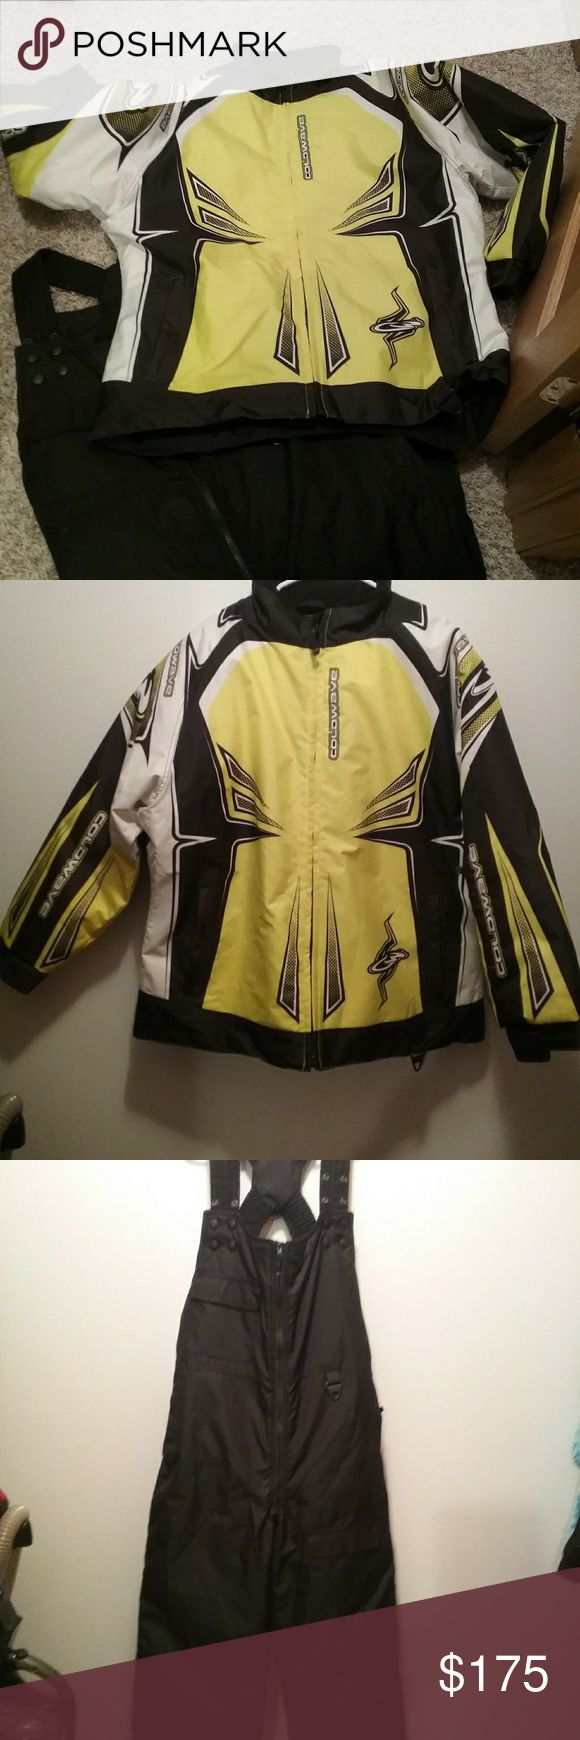 New snowmobile jacket/pants! Like new (only worn twice) ladies snowmobile suit in yellow/black/white colors.  Jacket is a Coldwave brand size 2XL.  Pants are also Coldwave brand in solid black with adjustable suspenders in size ladies short 2XL.  Would be willing to sell these 2 pieces separately, if wanted.  Super warm! Coldwave Other